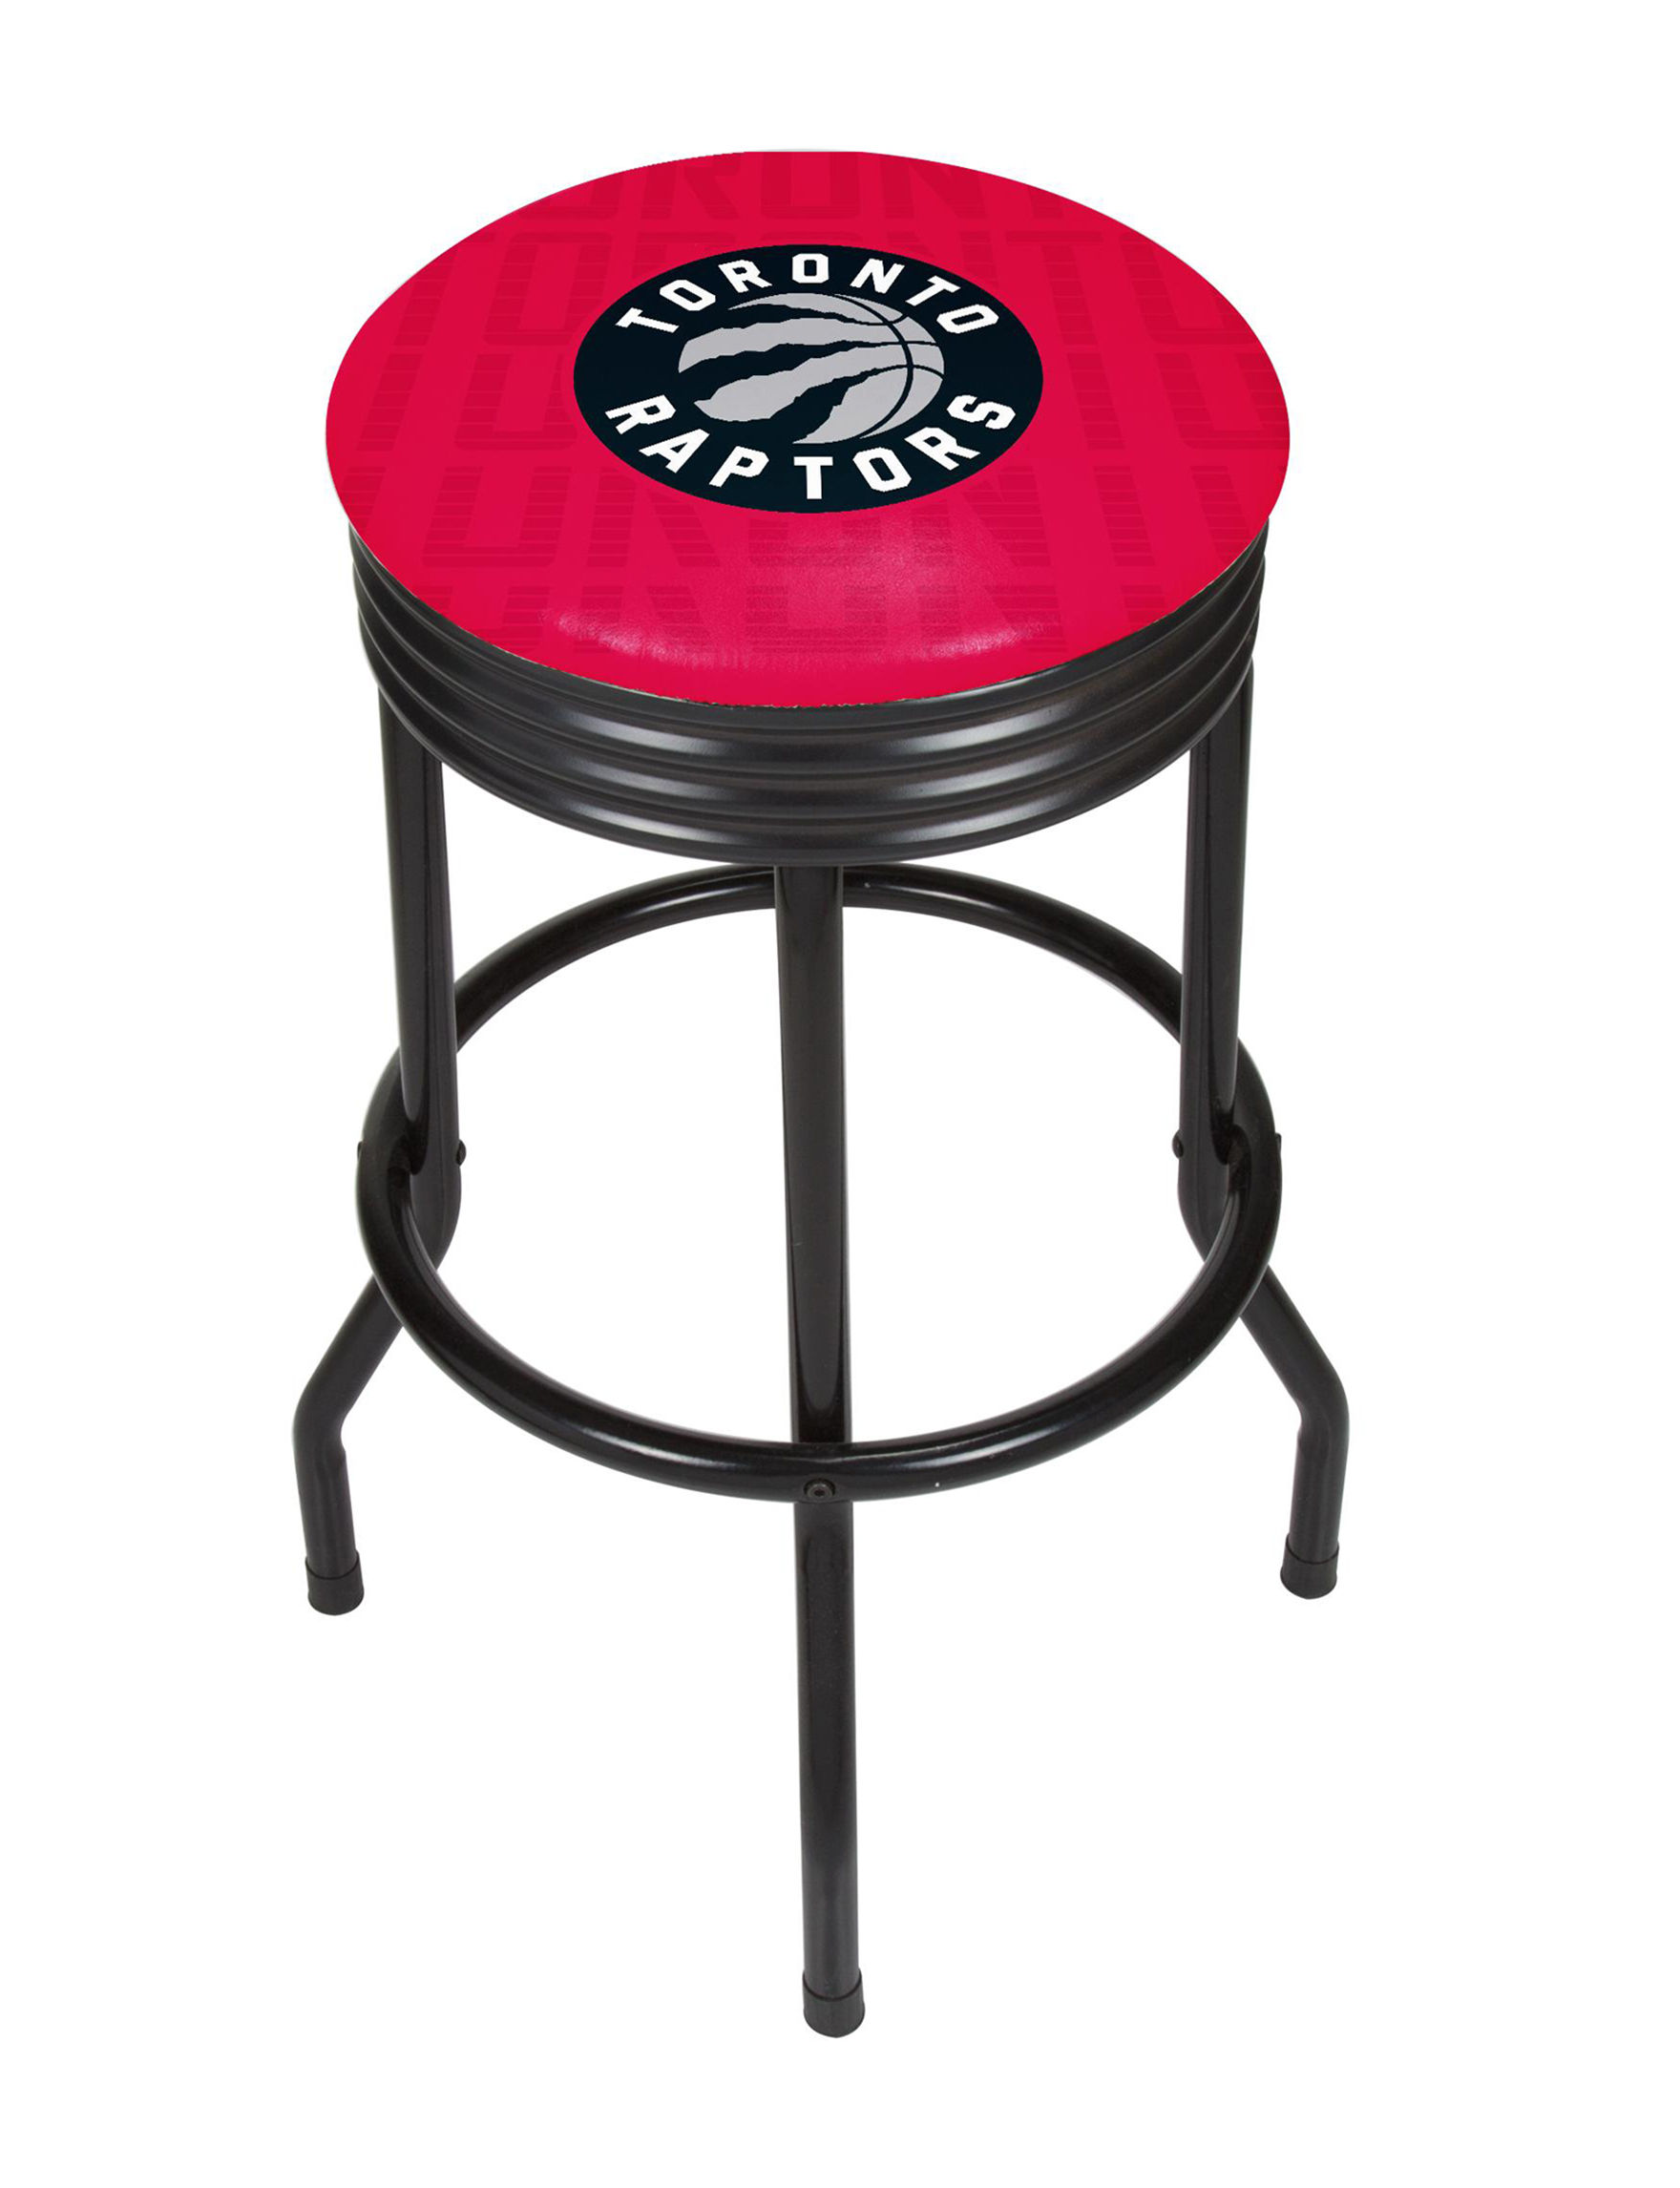 NBA Red / Black / White Bar & Kitchen Stools Kitchen & Dining Furniture NBA